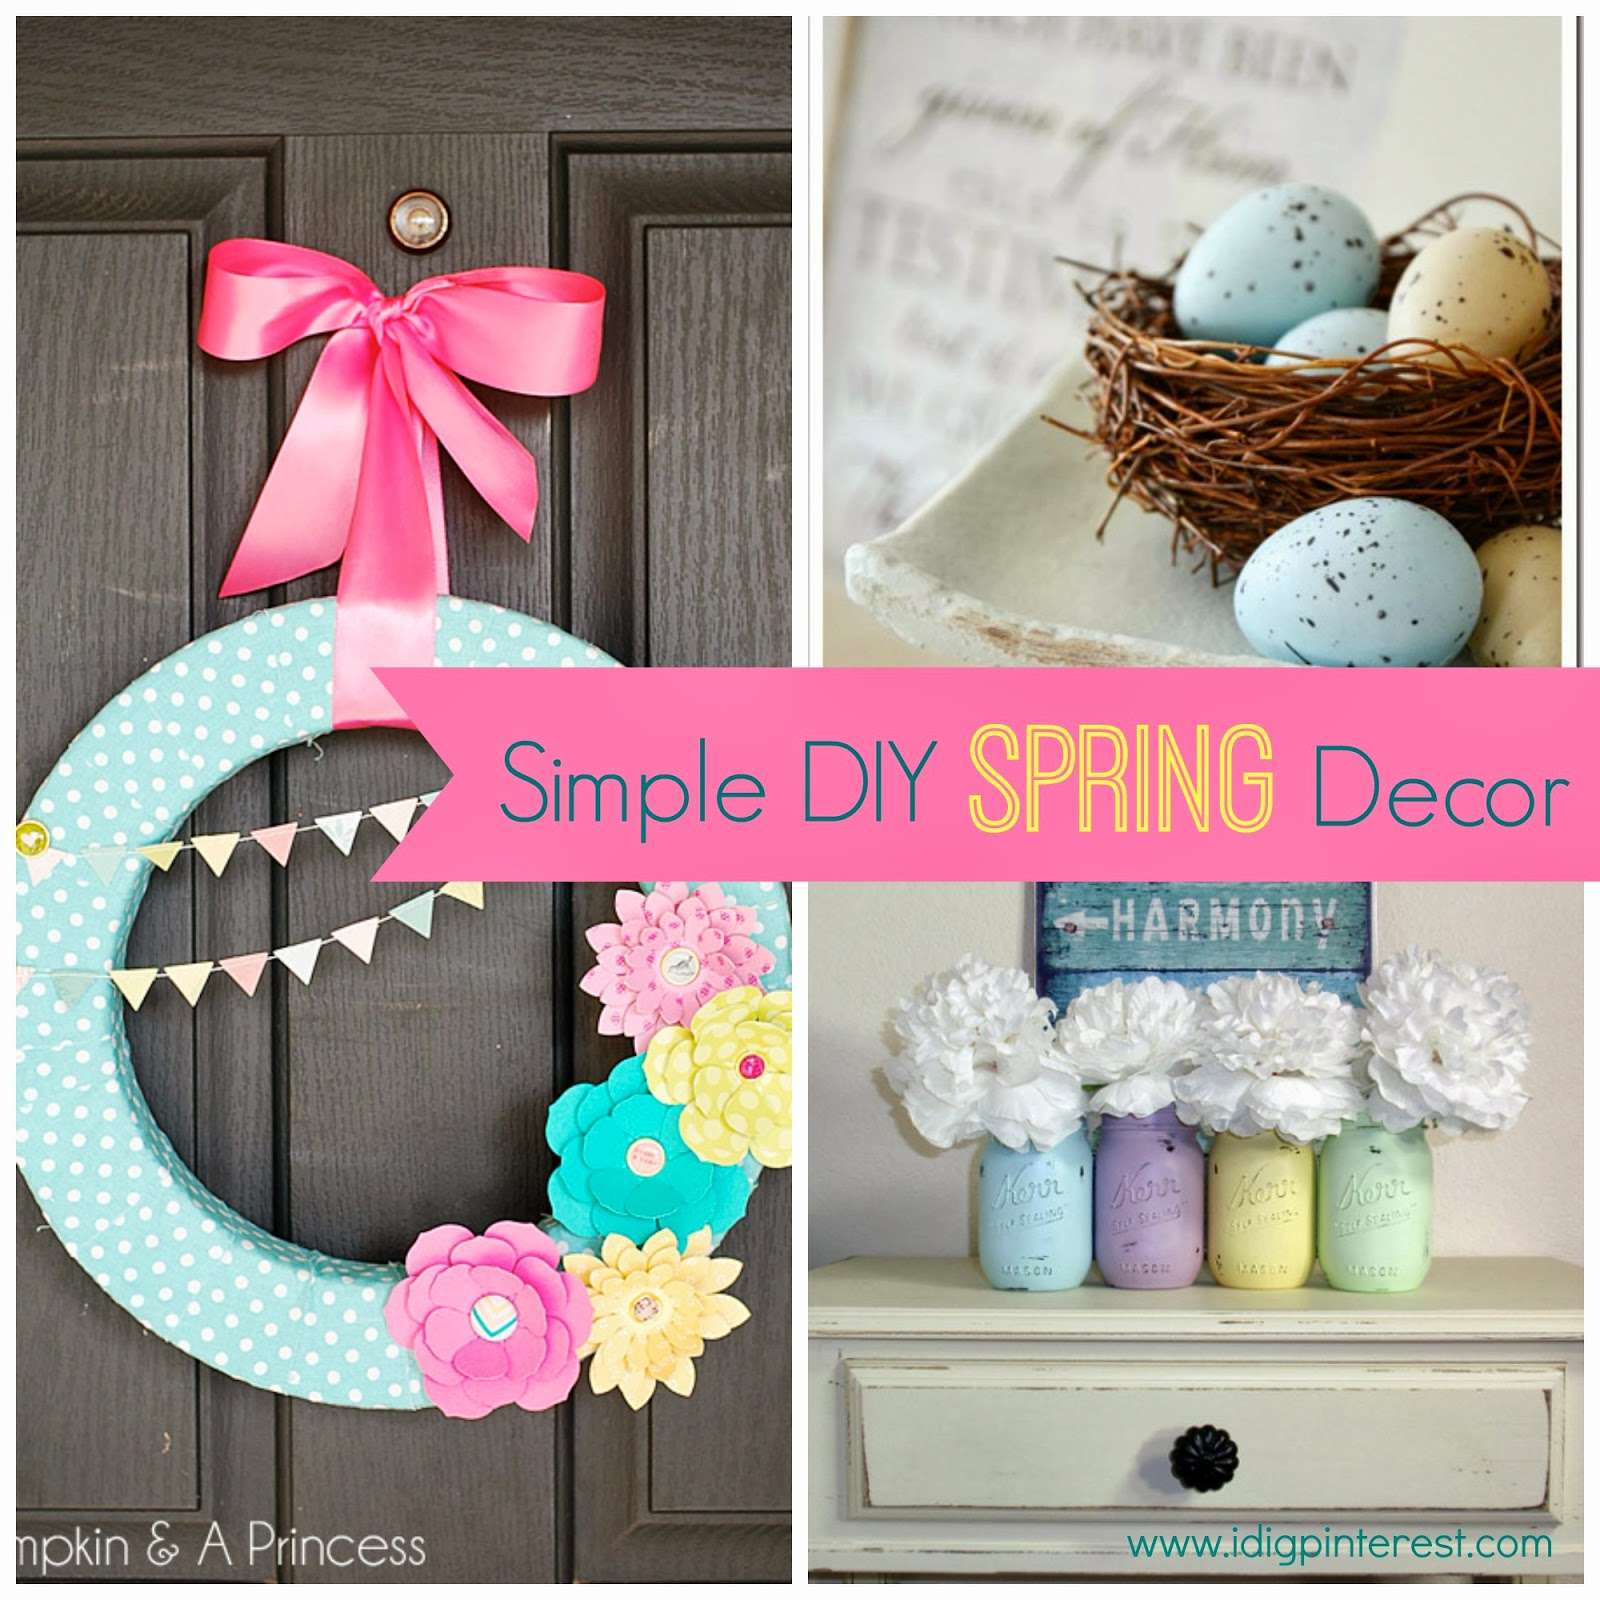 I Dig Pinterest Simple DIY Spring Decor Ideas